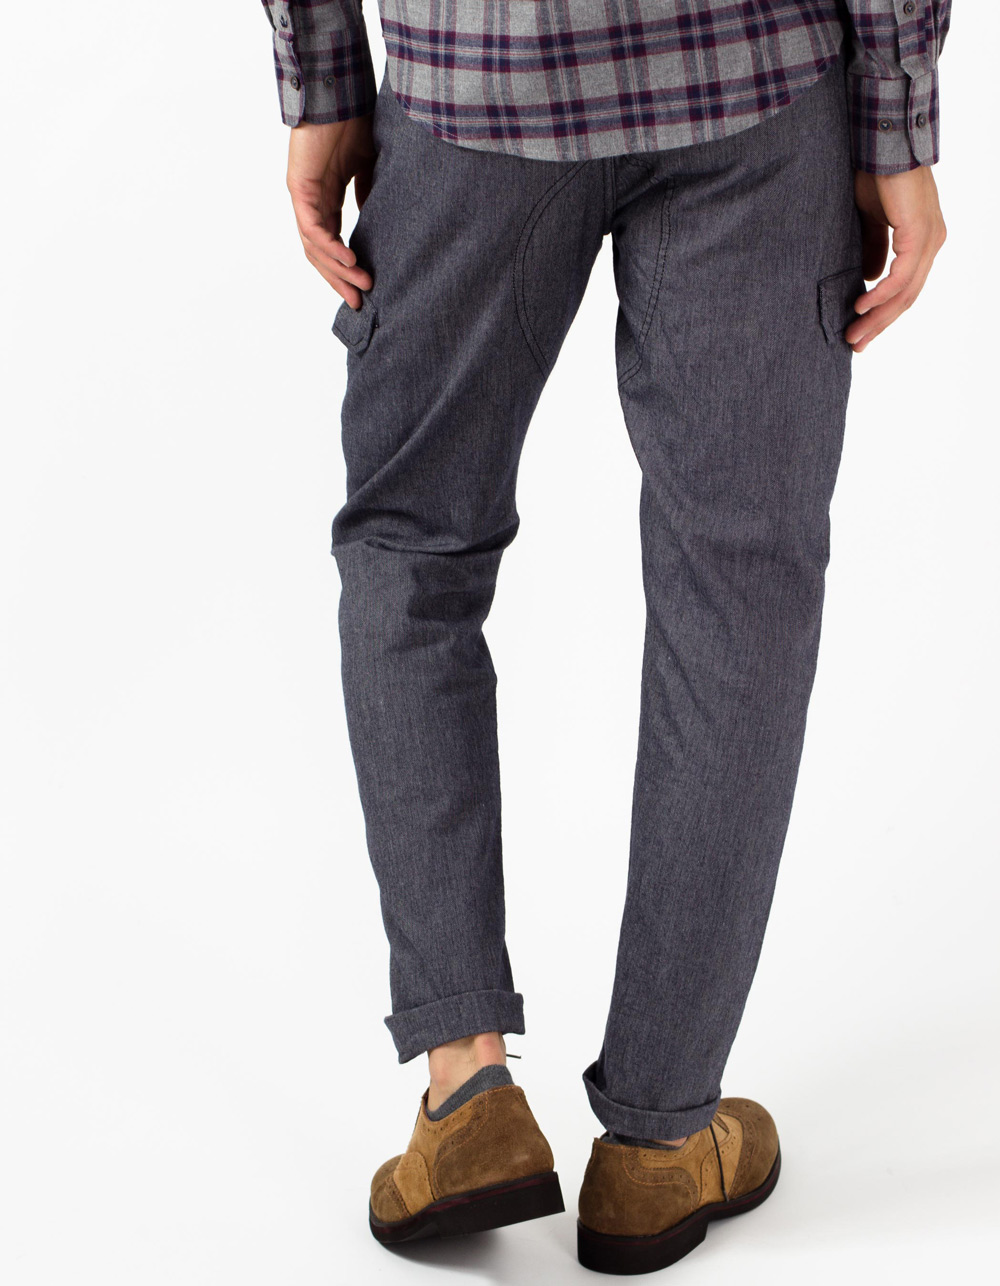 Dark navy cargo trousers - Backside